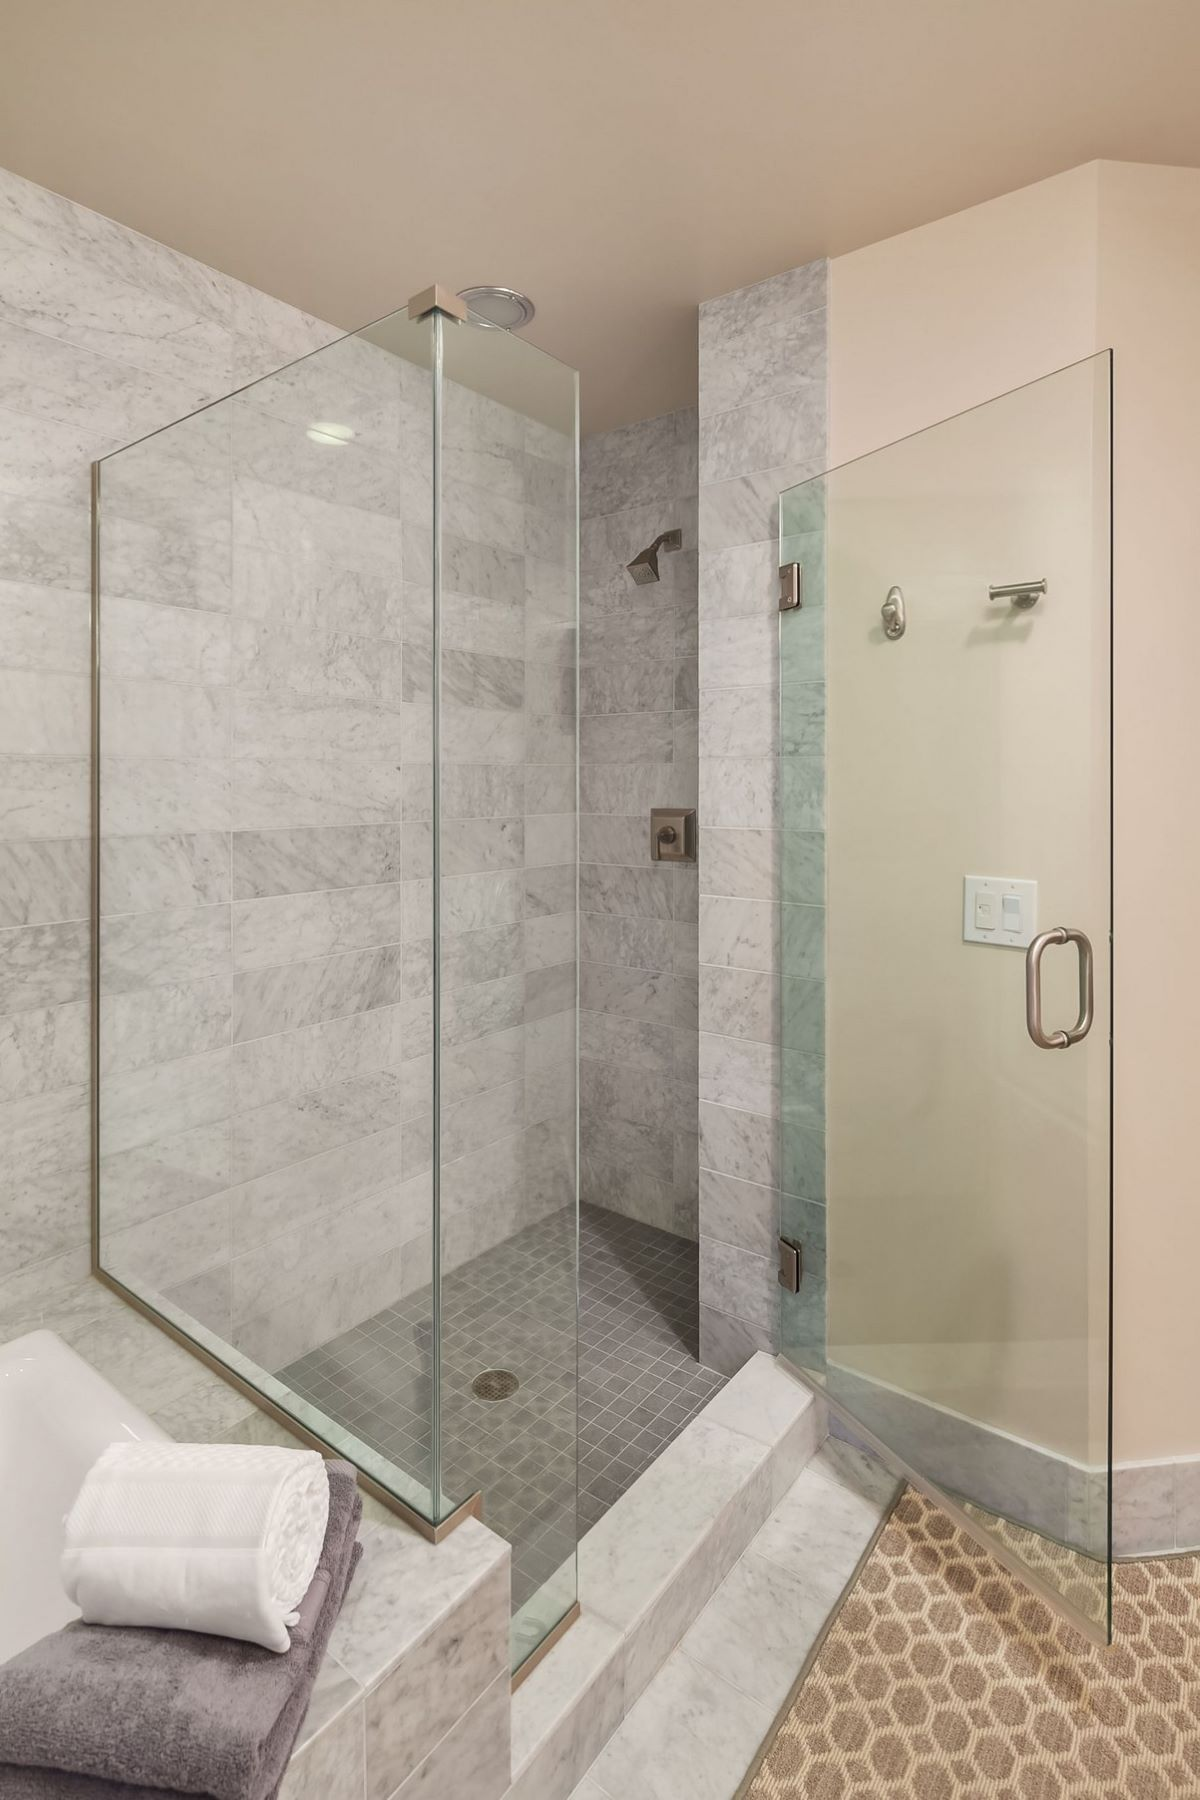 Additional photo for property listing at 1920 4th Ave 2505, Seattle 1920 4th Ave 2505 Seattle, Washington 98101 United States